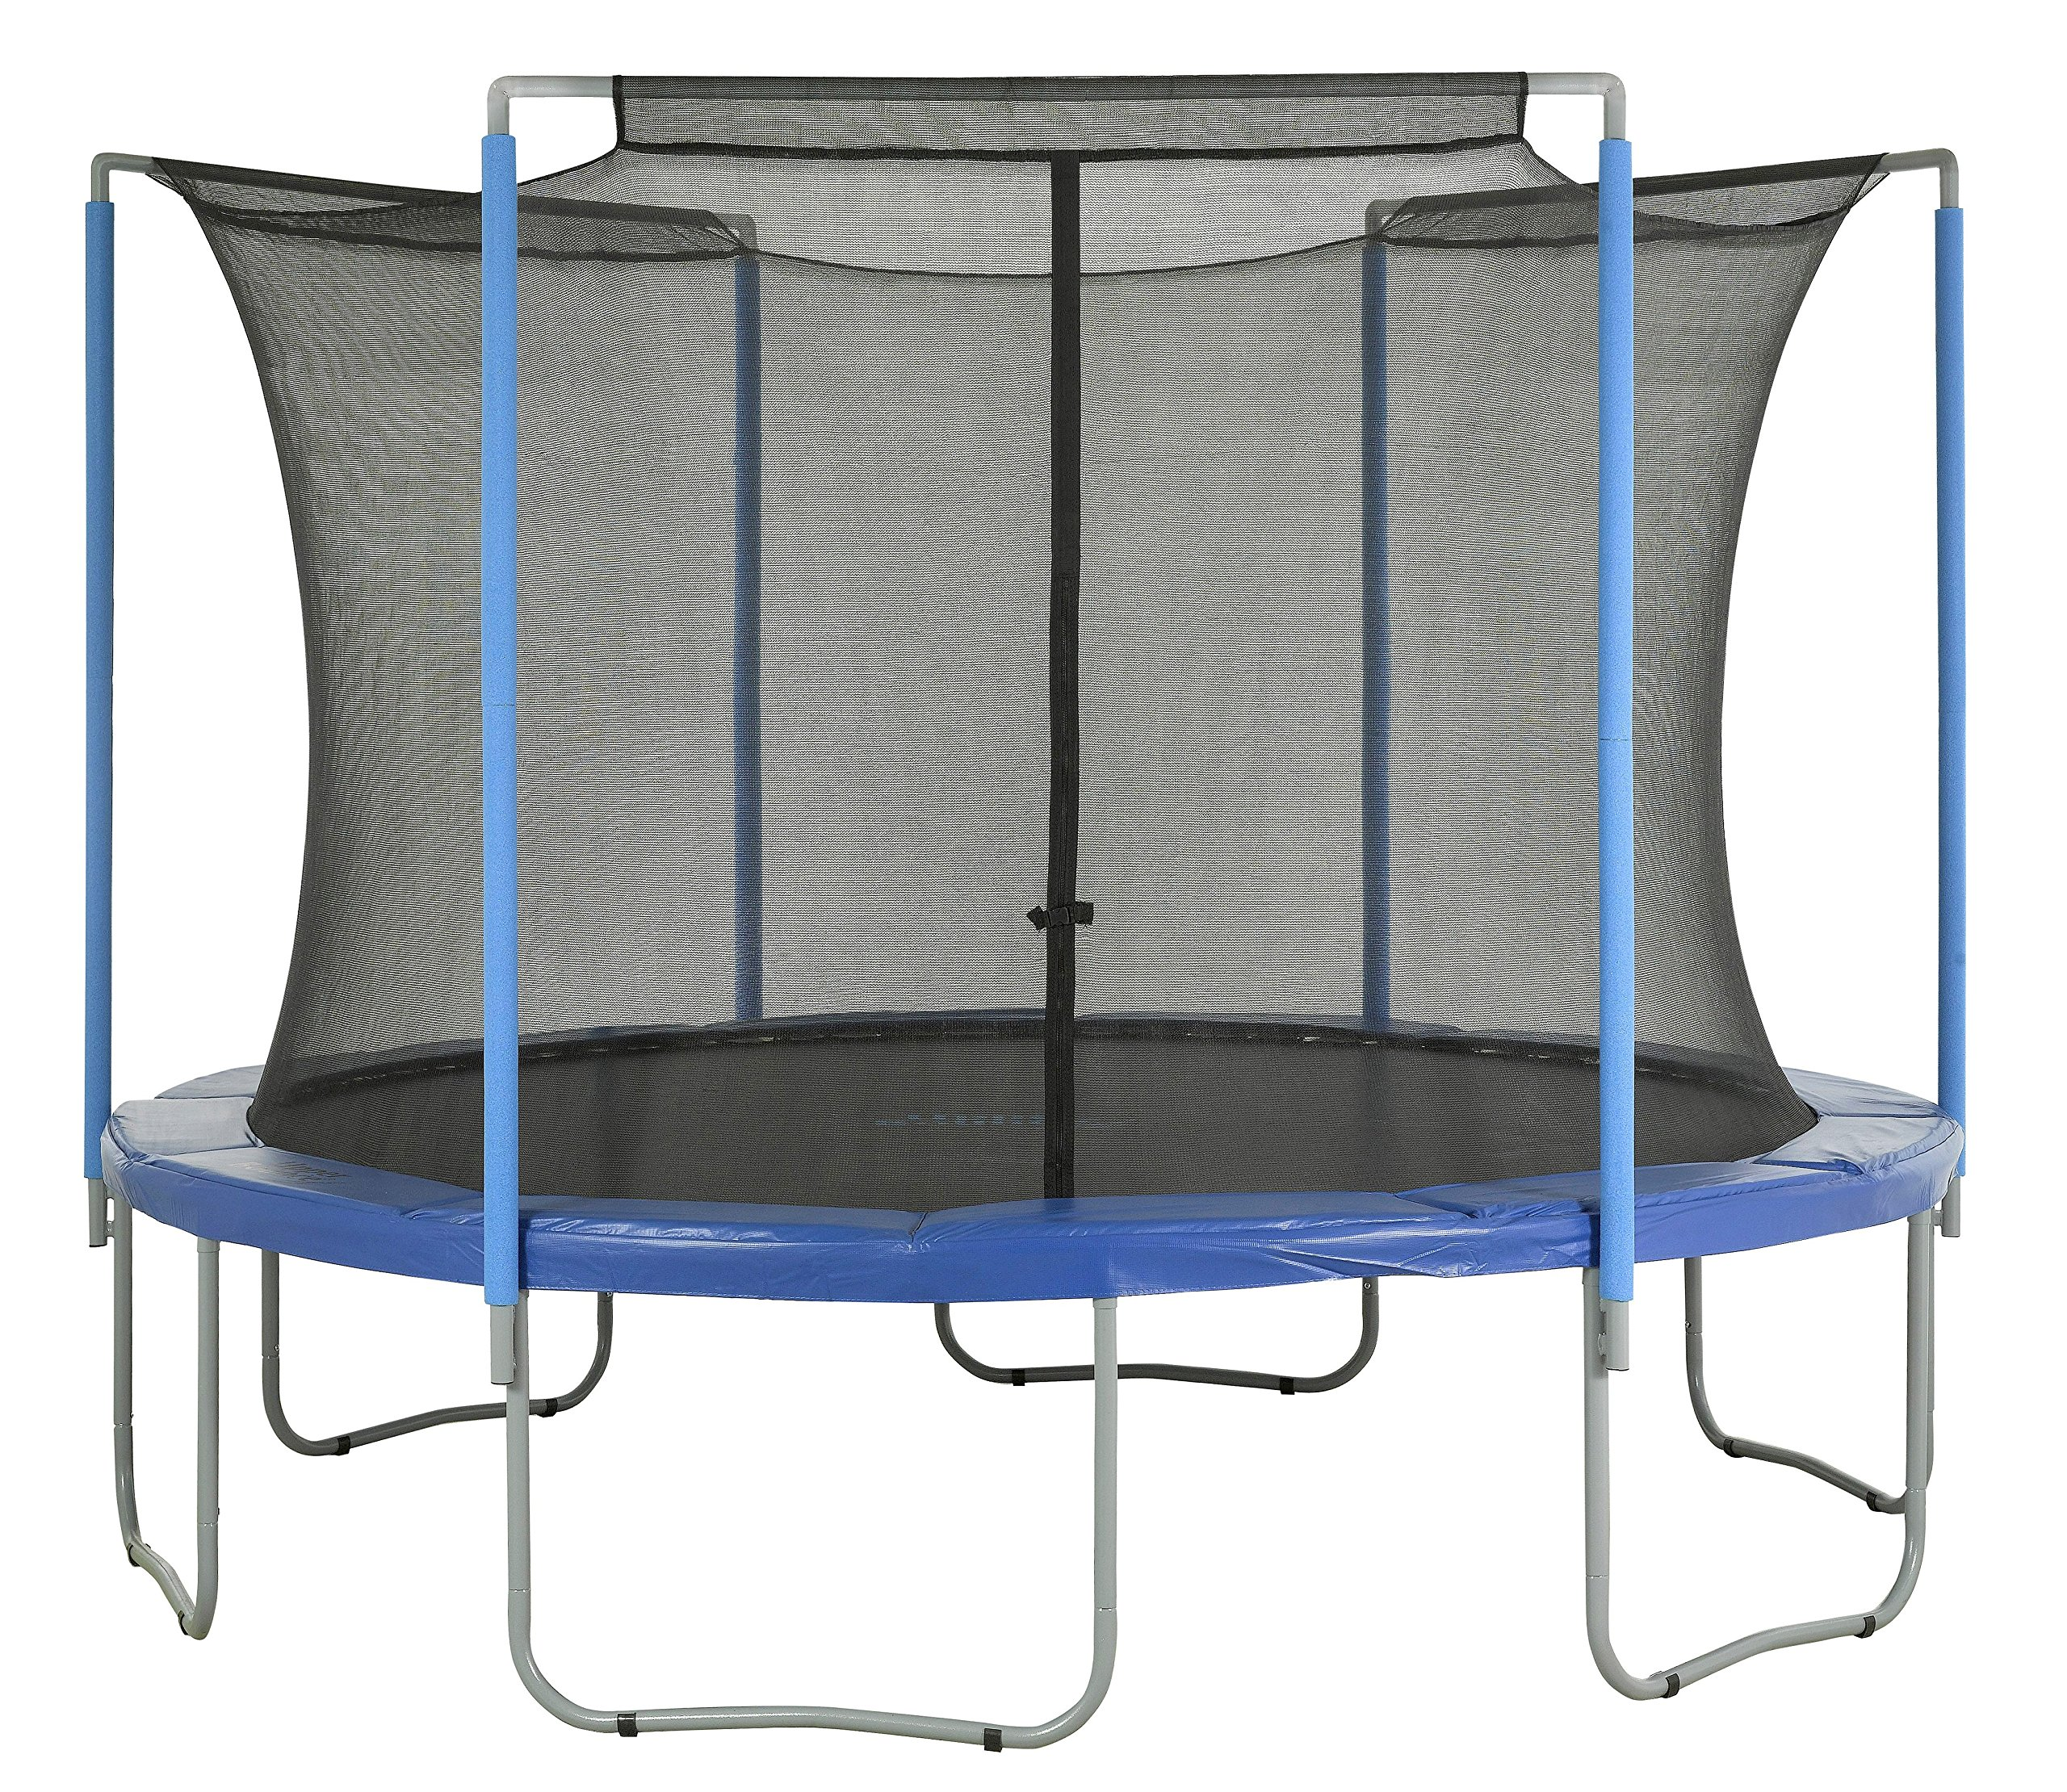 Upper Bounce Trampoline Enclosure Safety Net with Sleeves on top Fits for 15-Feet Round Frame Using 3 Arches (Poles Sold Separately) by Upper Bounce (Image #6)